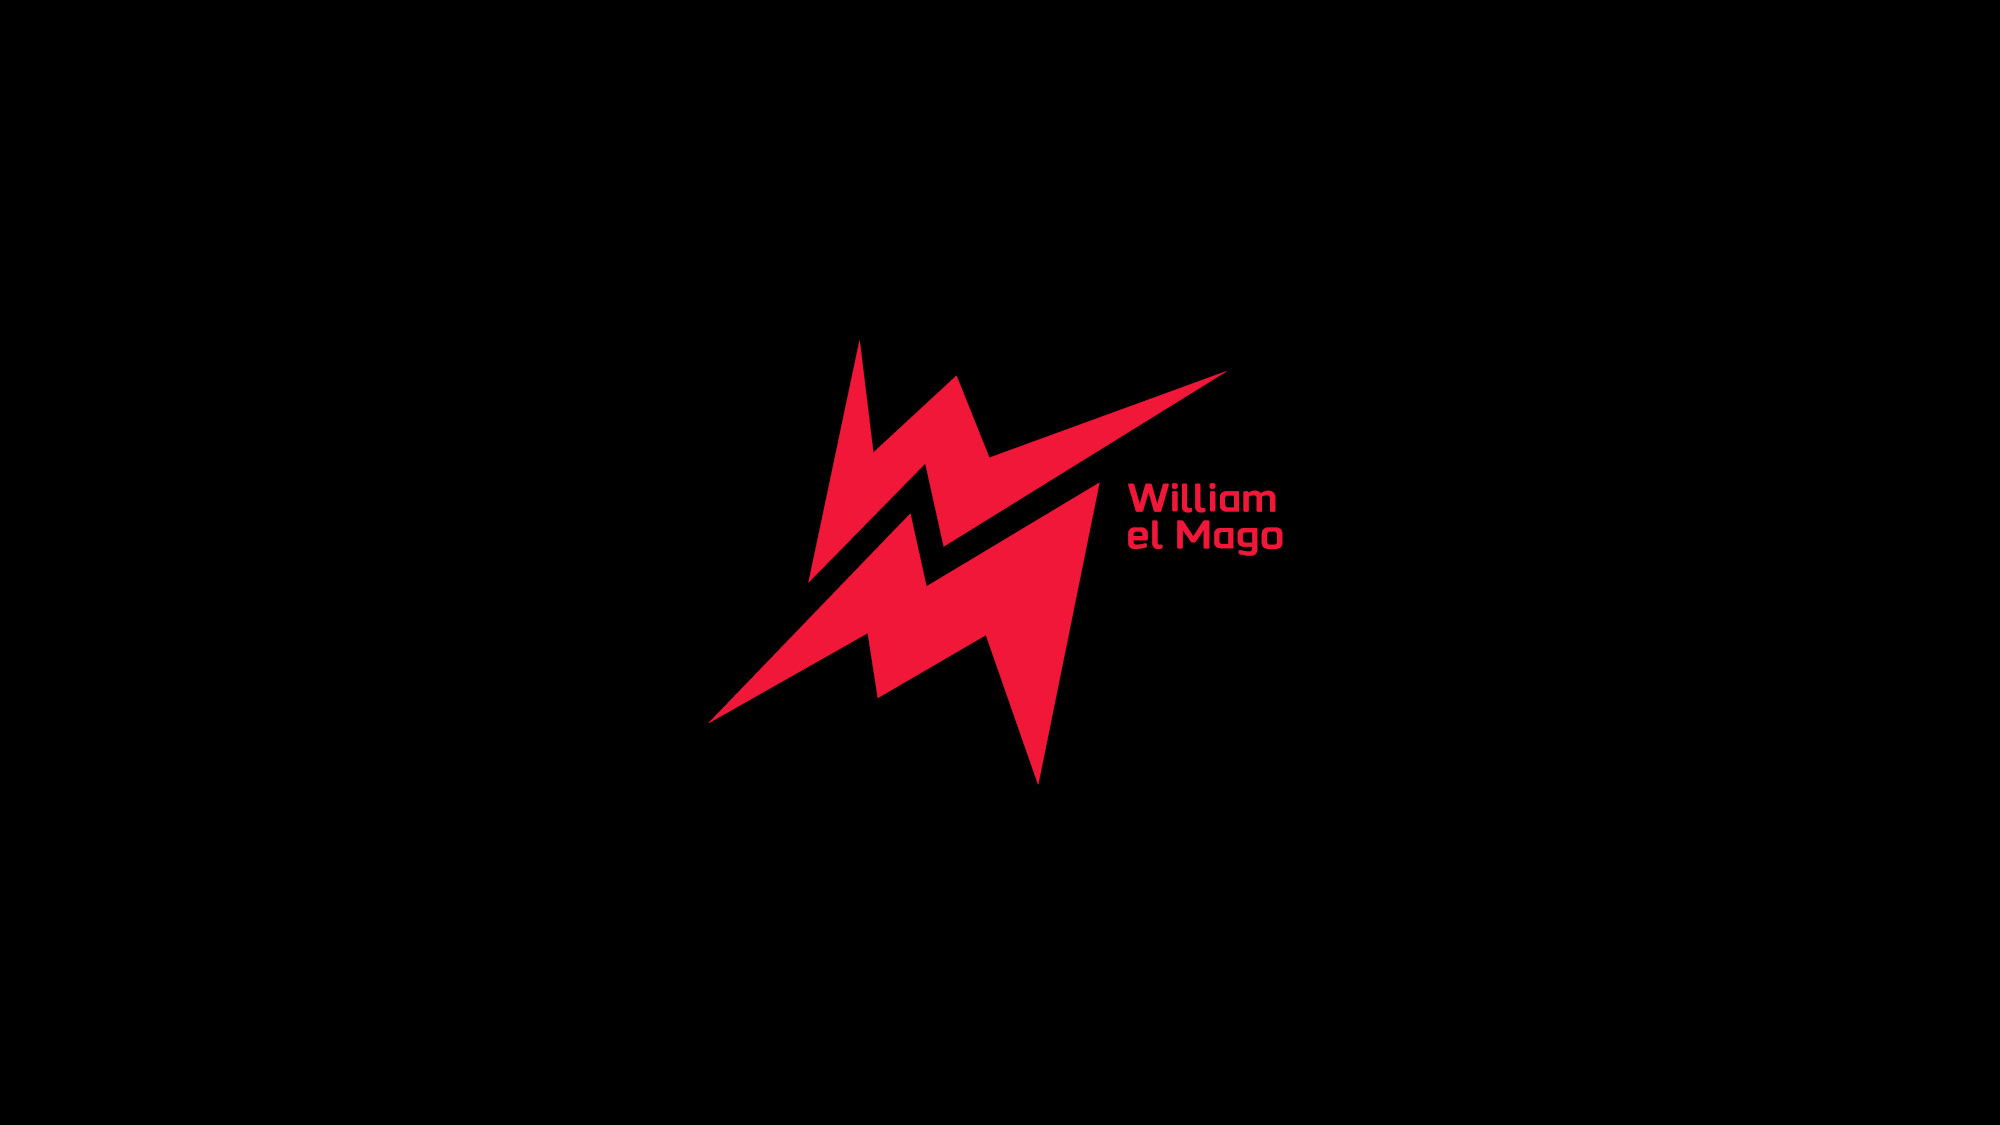 2020-Nacione-Branding-William-el-Mago2